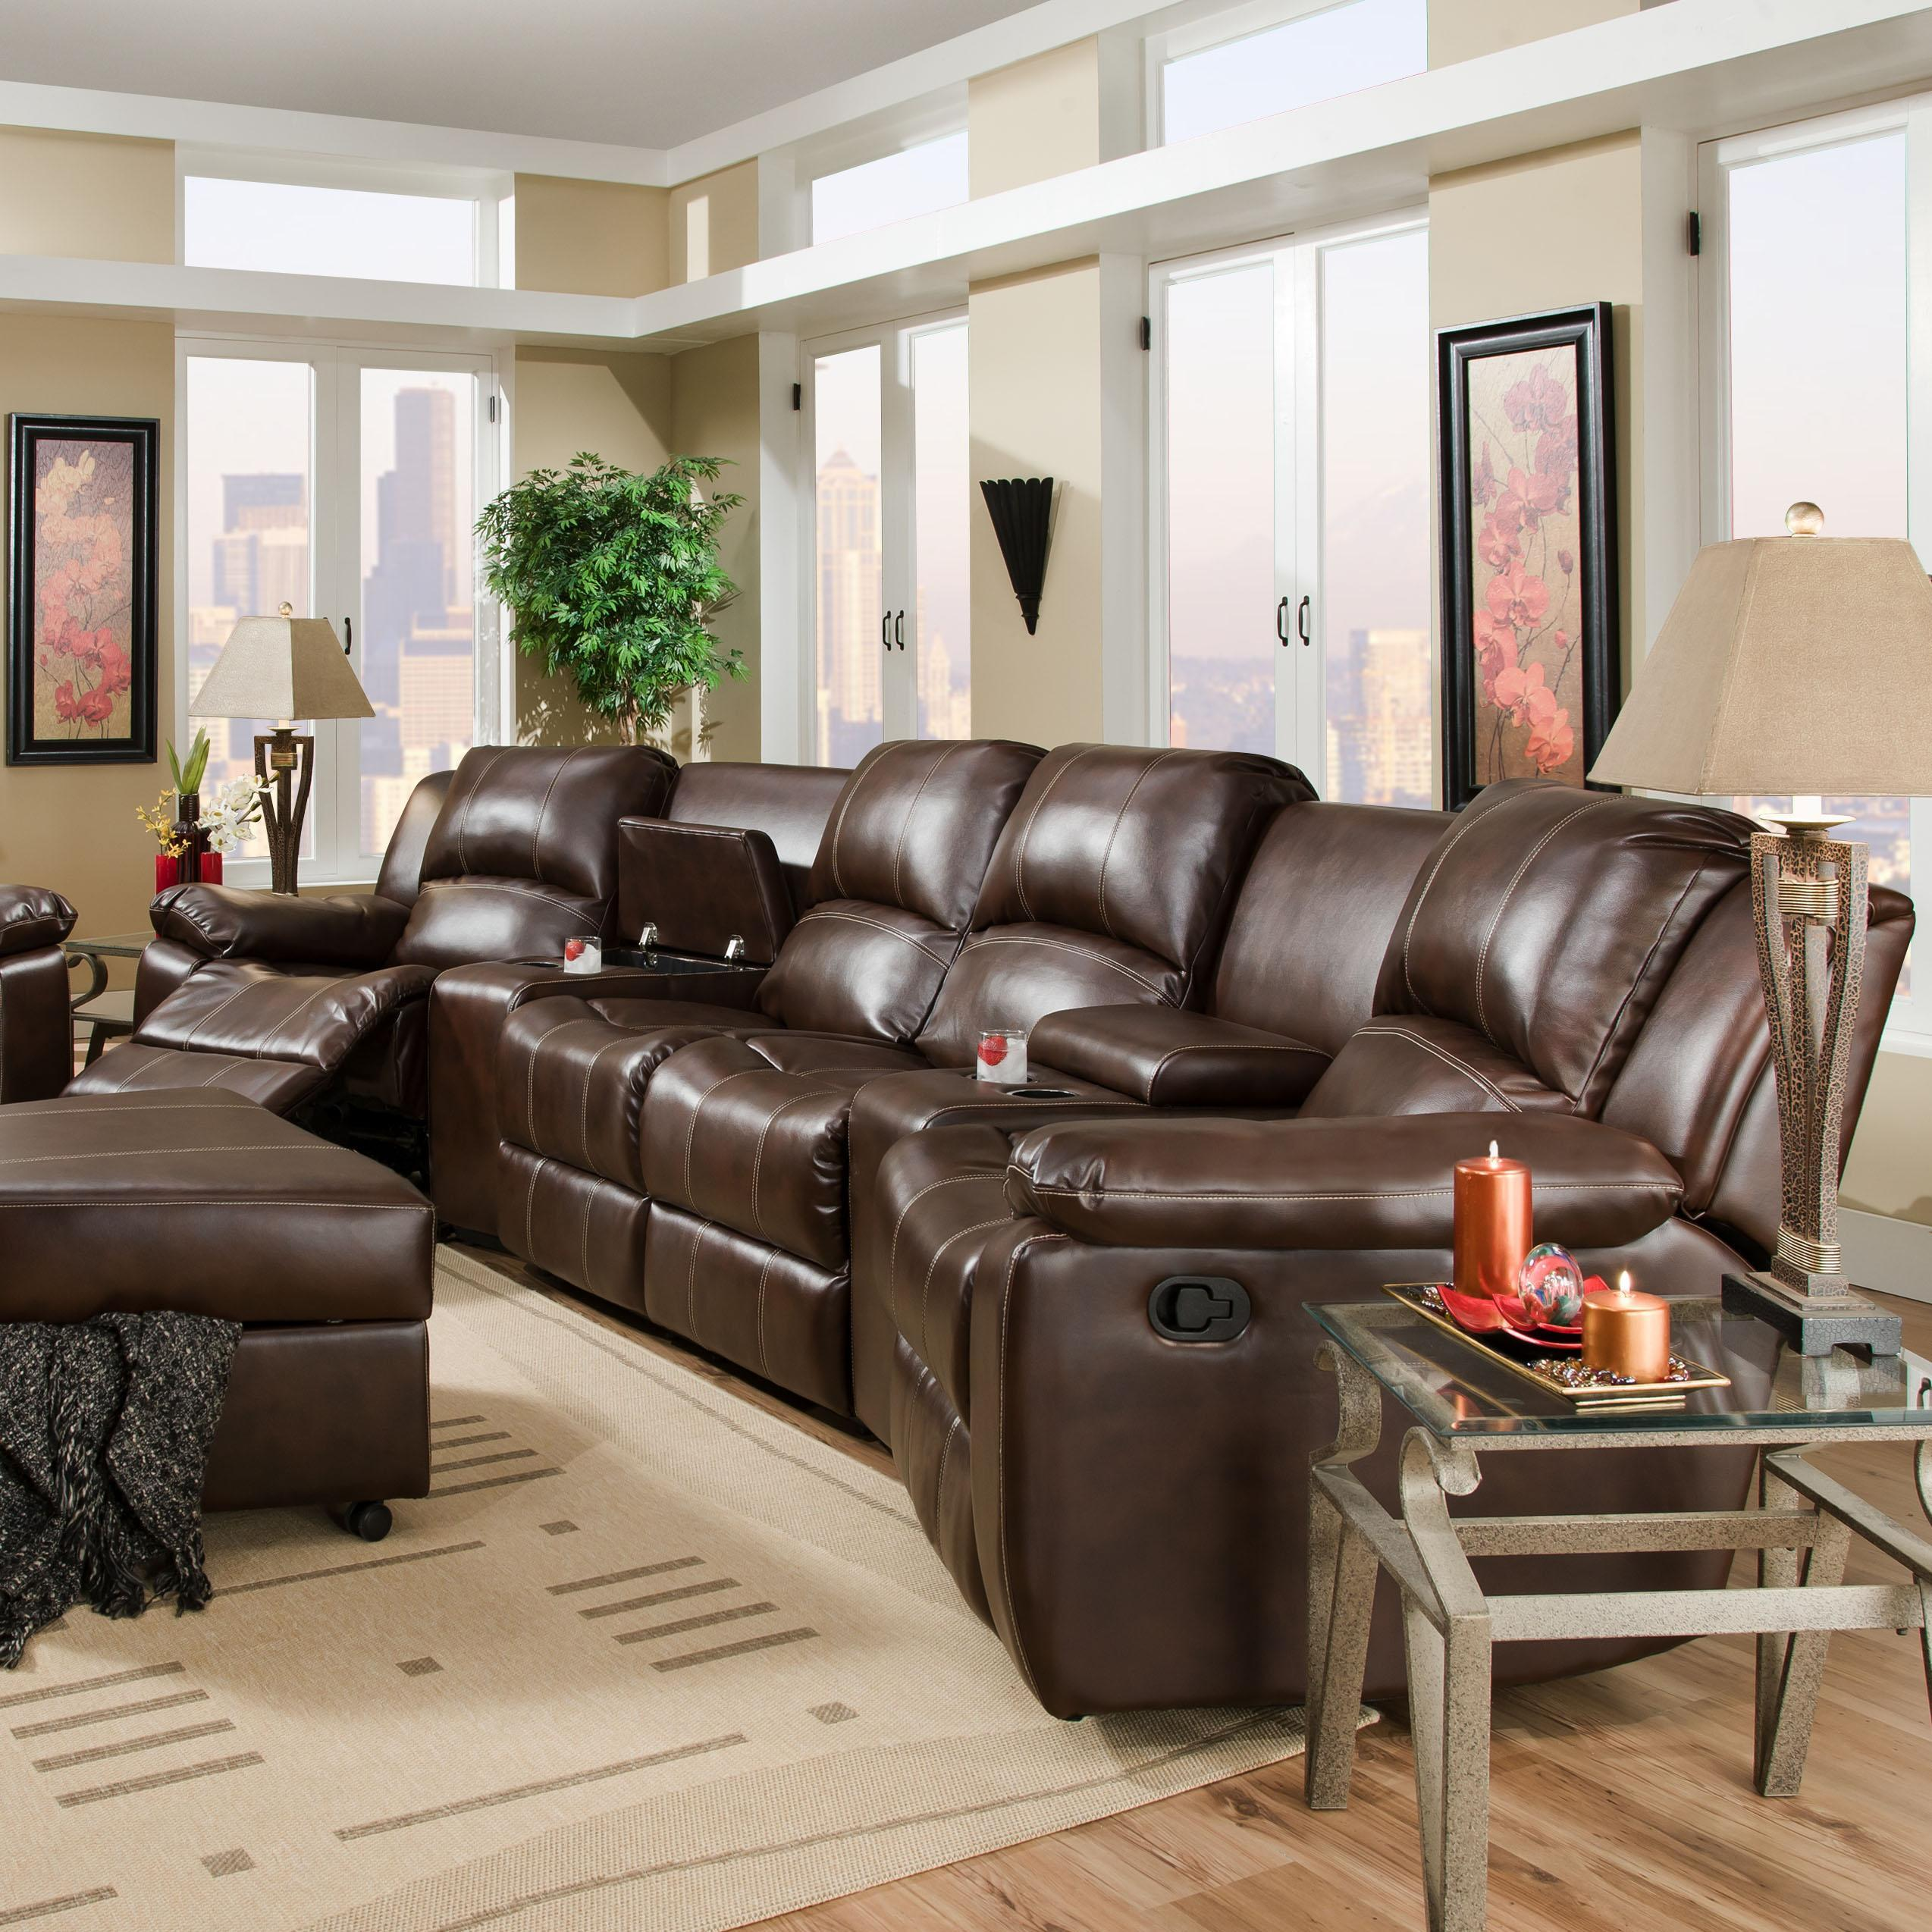 leather direct sectional seats power with flexsteel item loveseat eastlake latitudes love collections factory reclining westlake mackay northeast lmg console cleveland